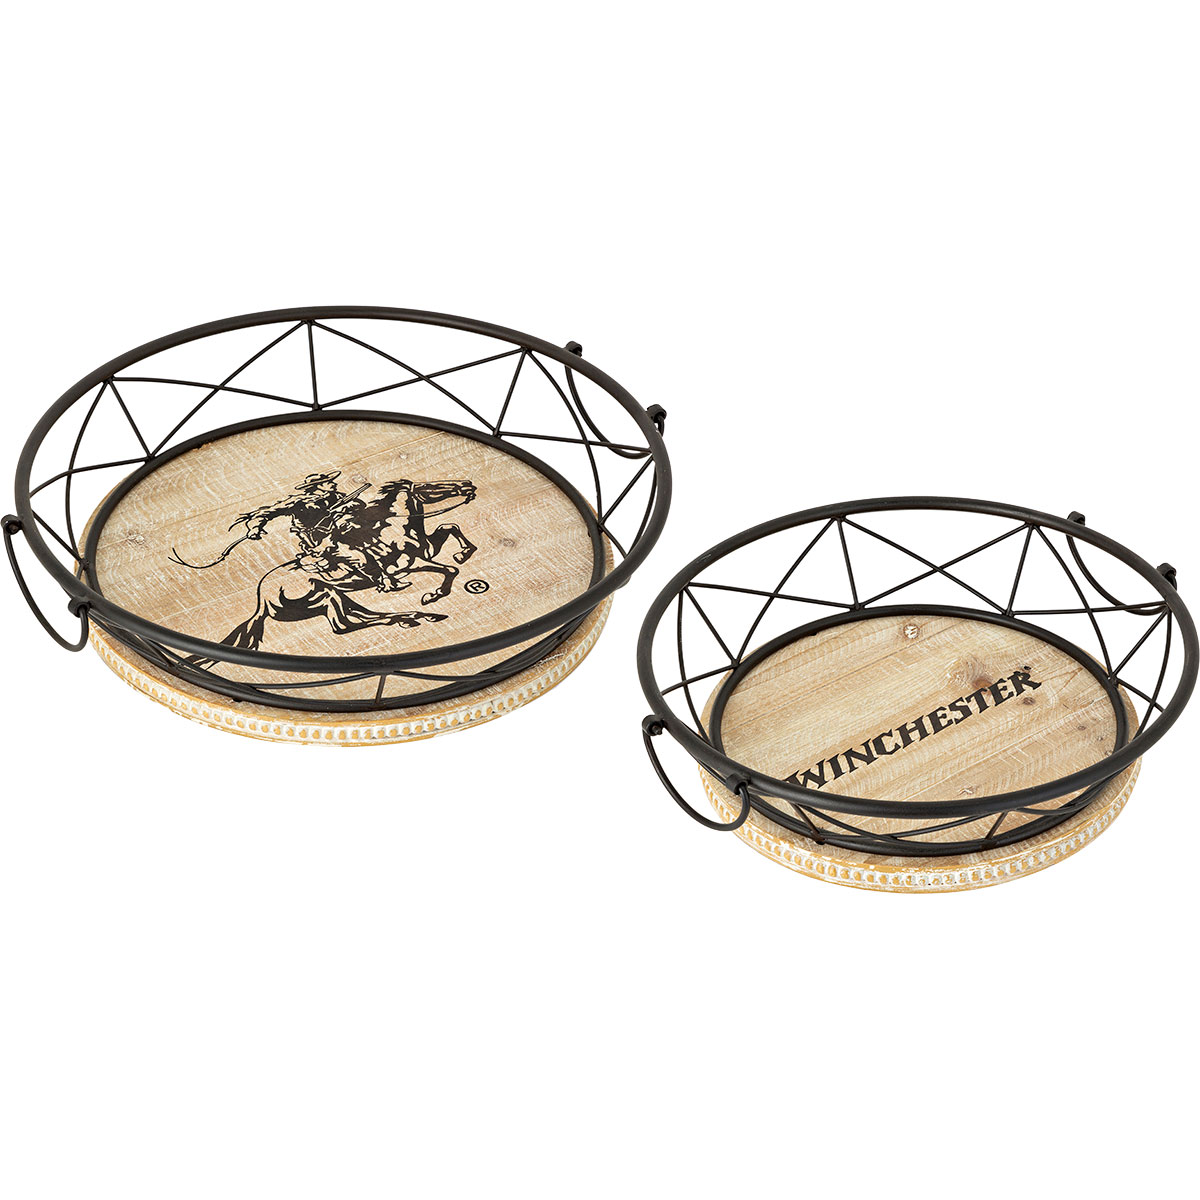 Winchester Trays - Set of 2